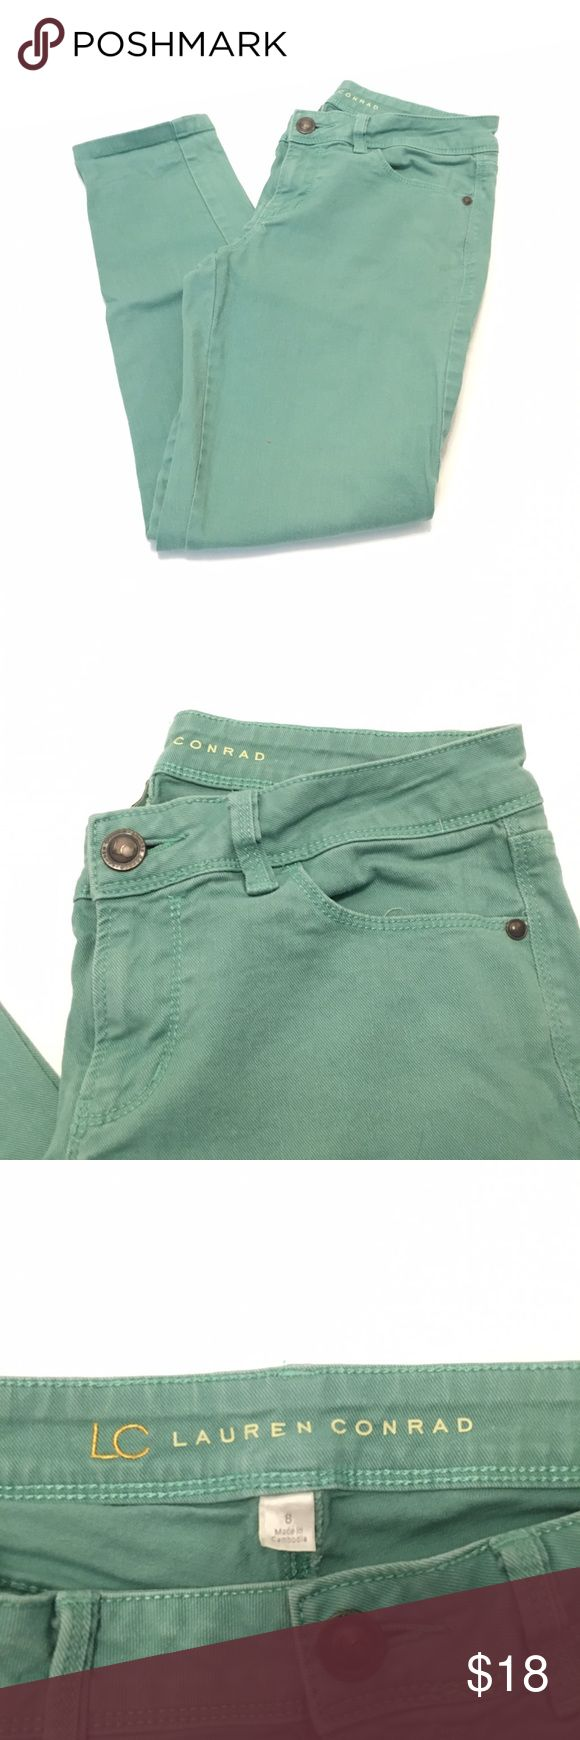 LC LAUREN CONRAD 🗽 MINT GREEN DENIM CAPRIS Adorable! Looking for the perfect pop of color to pair with any kind of top? These pants are an excellent decision. Their light mint color, cropped length and super cute construction make them a neutral but fun way to jazz up an outfit. Size 8 and in great condition. LC Lauren Conrad Pants Ankle & Cropped